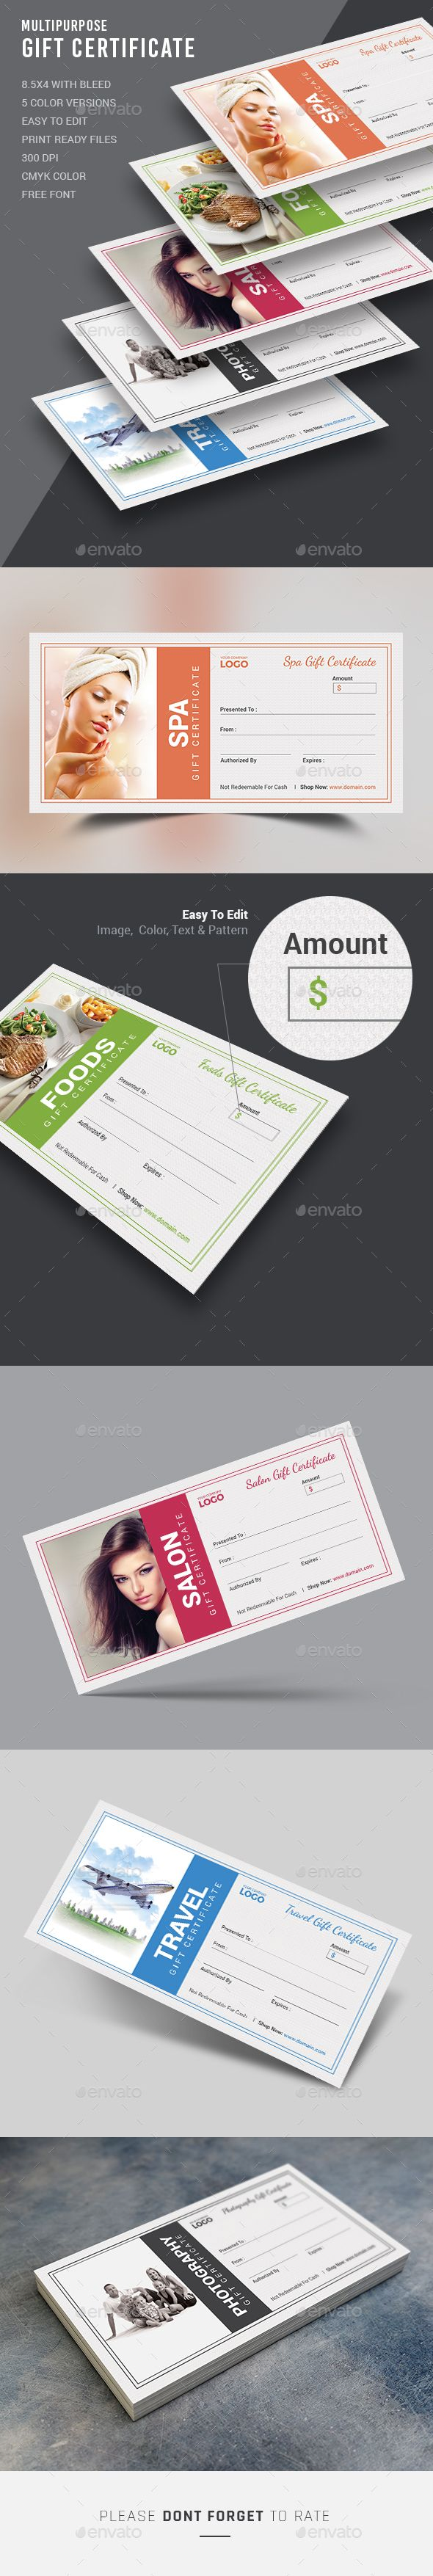 Best 25 gift certificate templates ideas on pinterest gift gift certificate xflitez Gallery